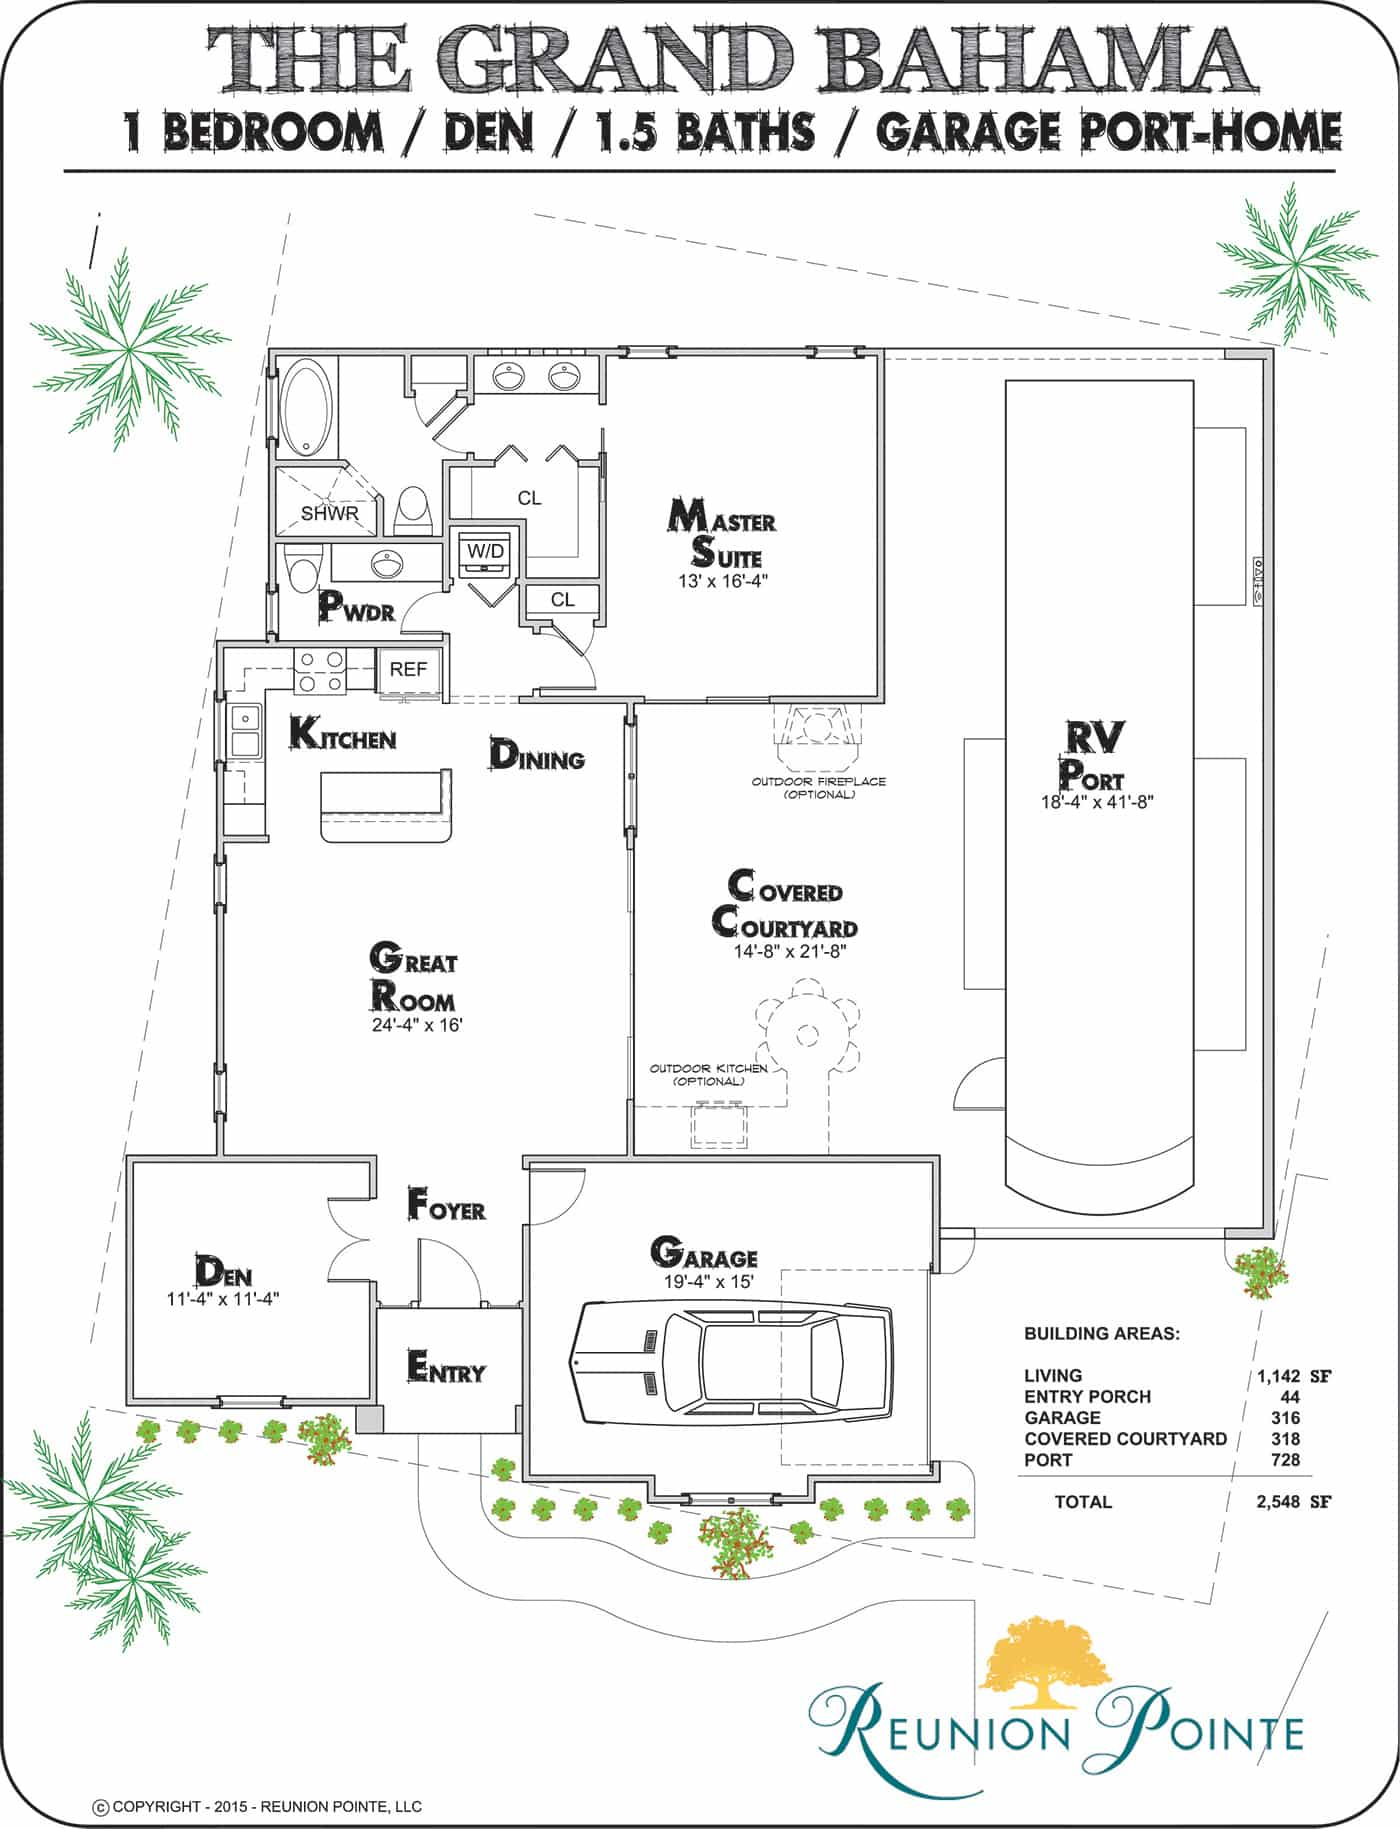 Grand Bahama RV Port-Home Model Floorplan